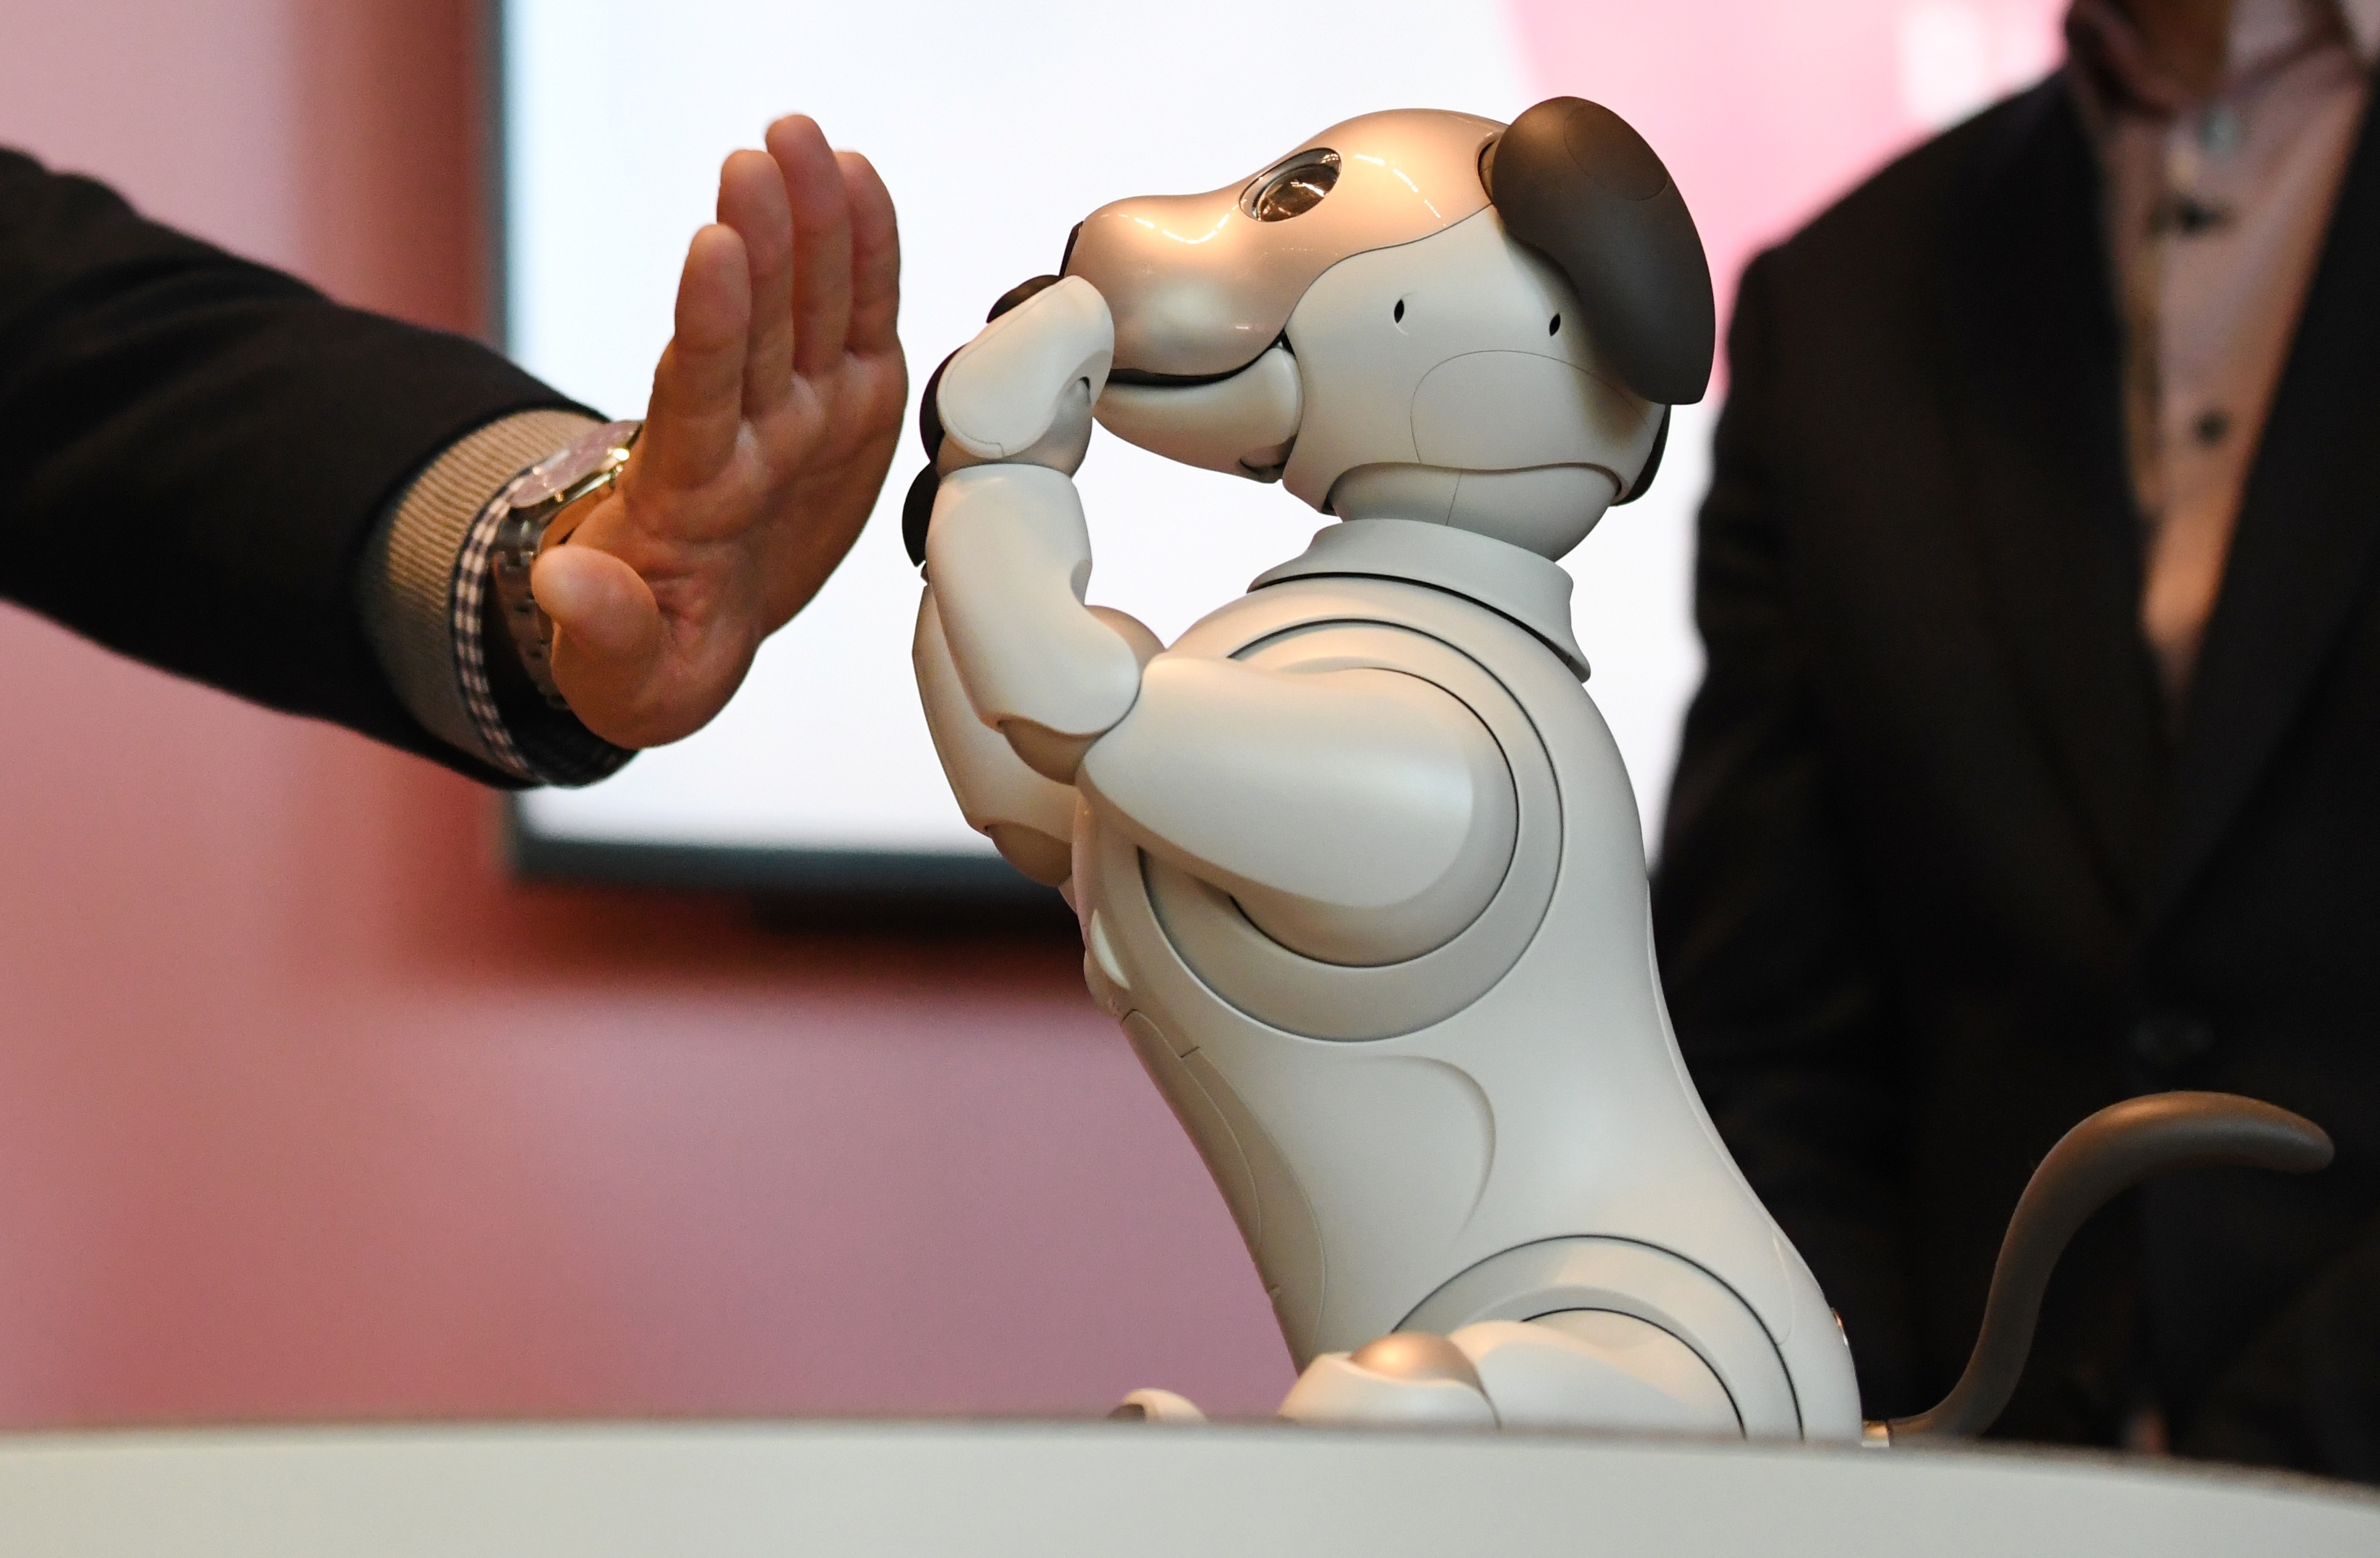 Why A.I. robotics should have the same ethical protections as animals